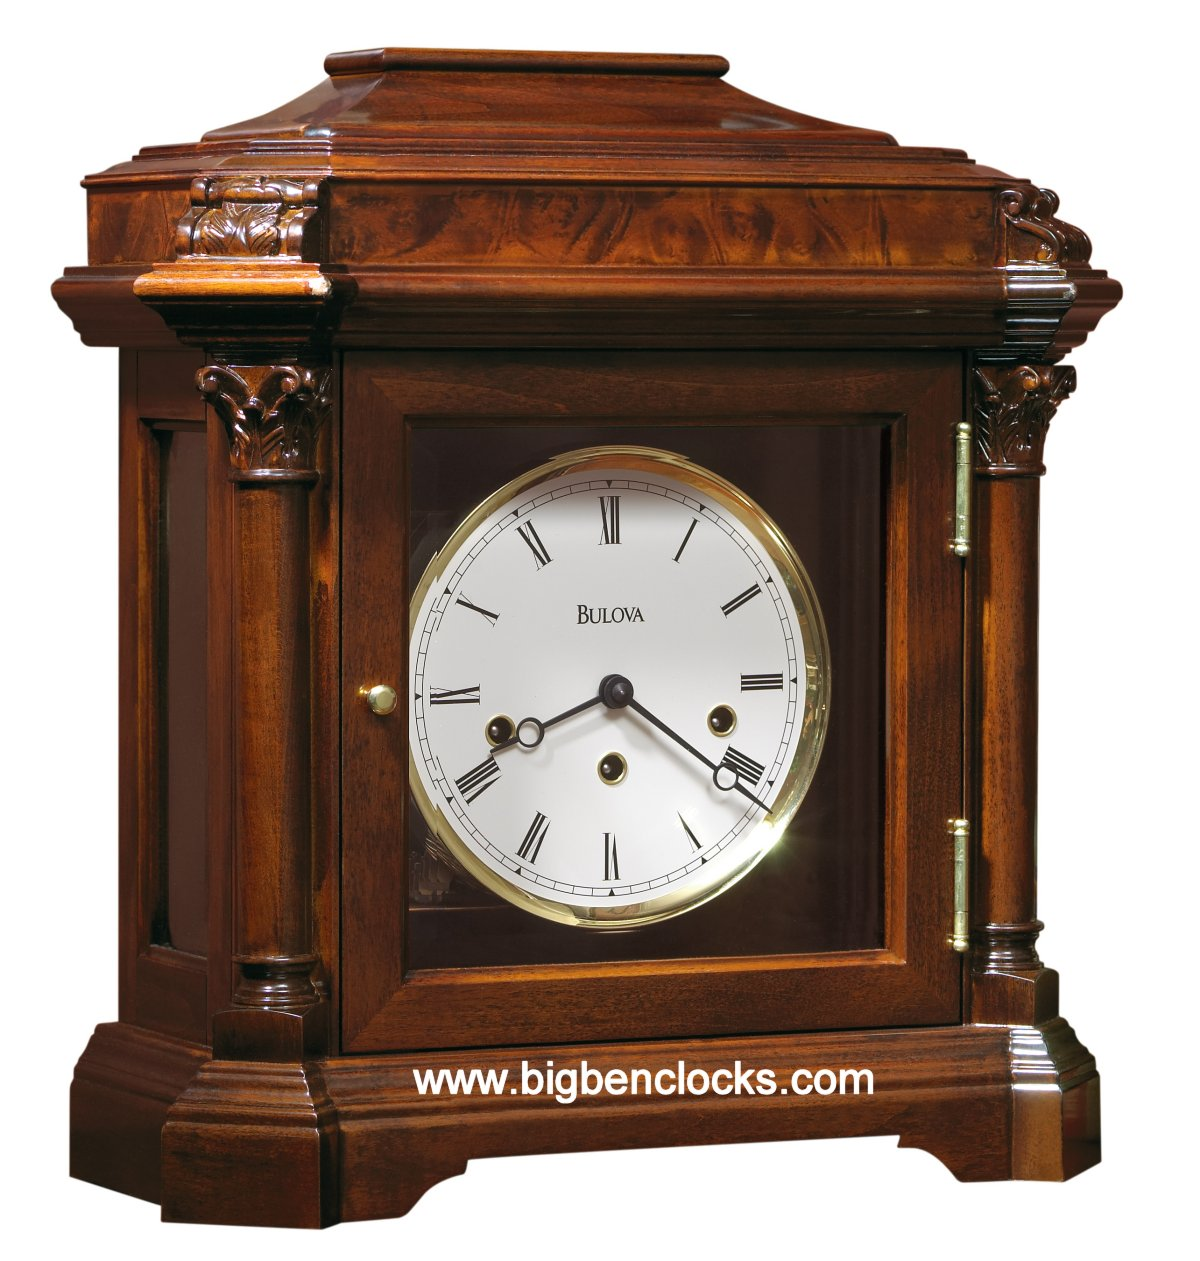 Bulova Mantel Clocks | Bulova Mantel Clock | Bulova Desktop Clock